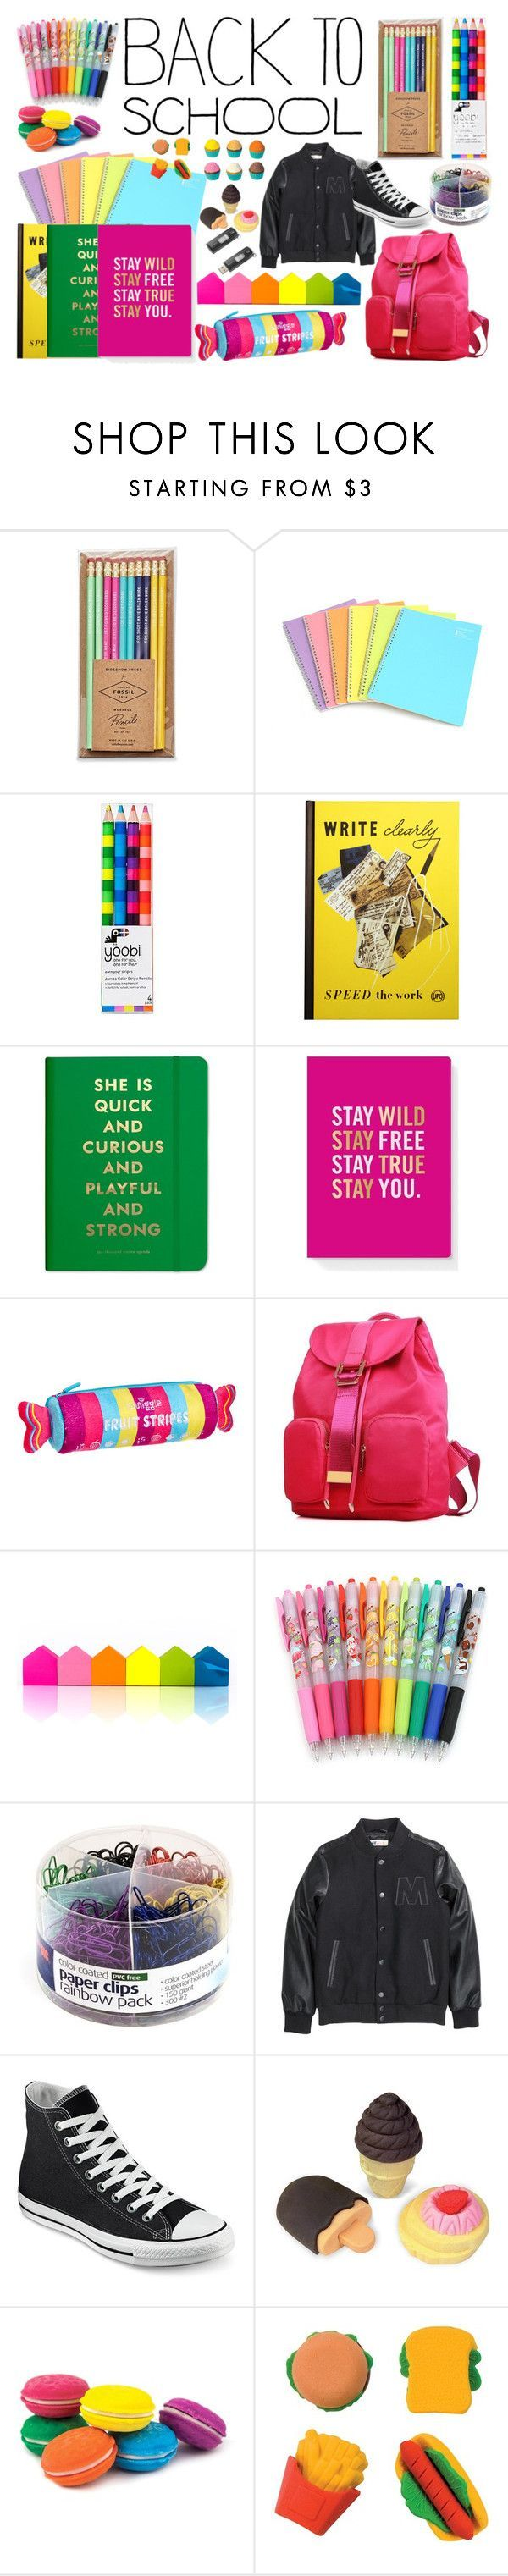 """""""Back to school supplies"""" by zoe-keredy ❤ liked on Polyvore featuring interior, interiors, interior design, home, home decor, interior decorating, FOSSIL, Yoobi, Dot & Bo and Kate Spade"""